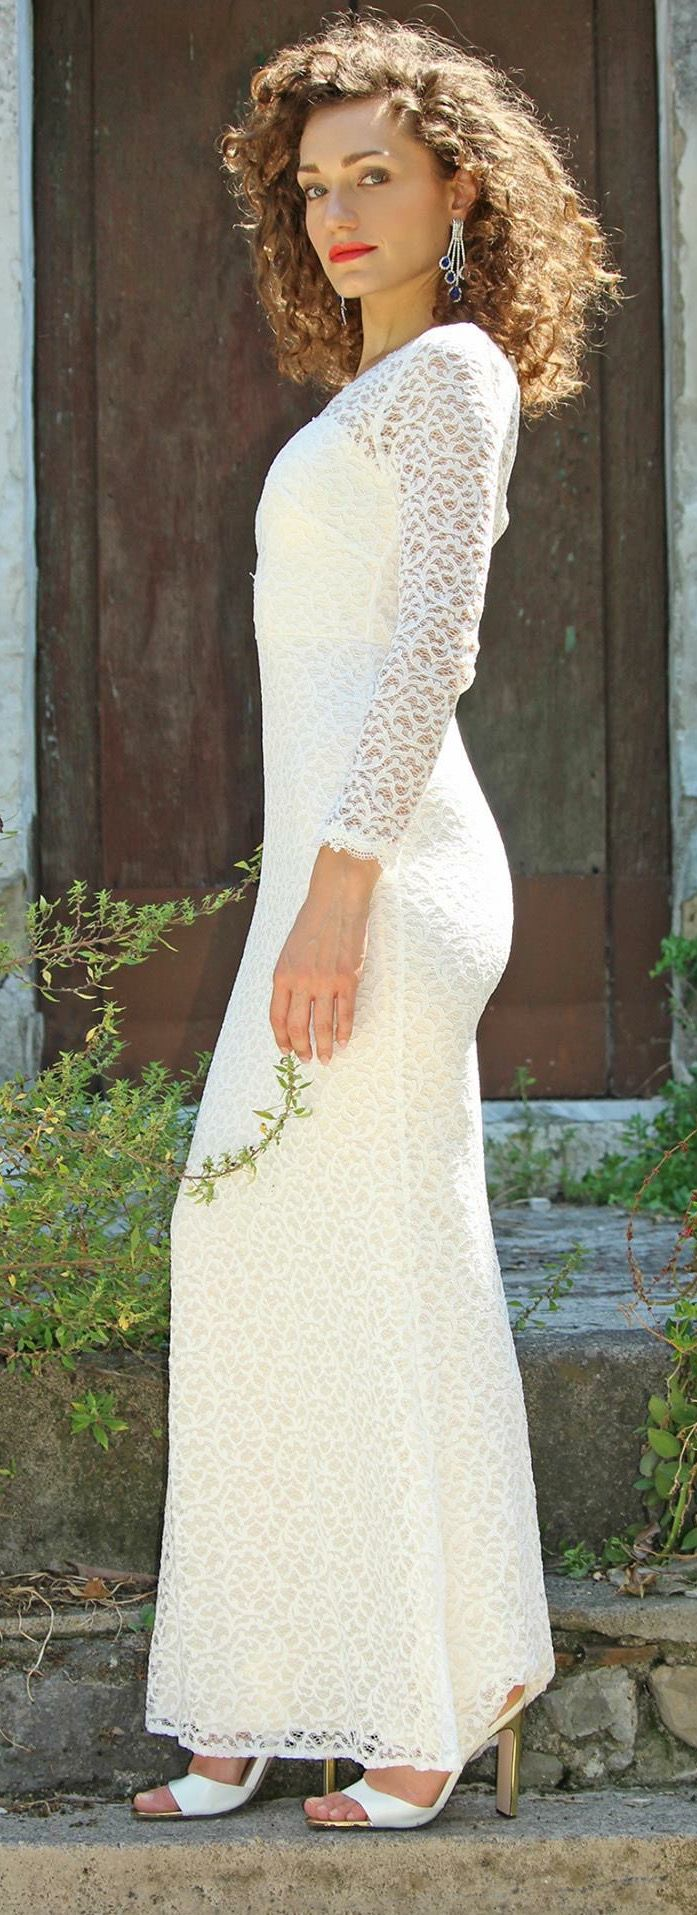 With Our Ever Pretty Collection Of Wedding Dresses You Get A Stunning Dress For Your Big Day At Fraction The Cost Traditional Bridal Shops